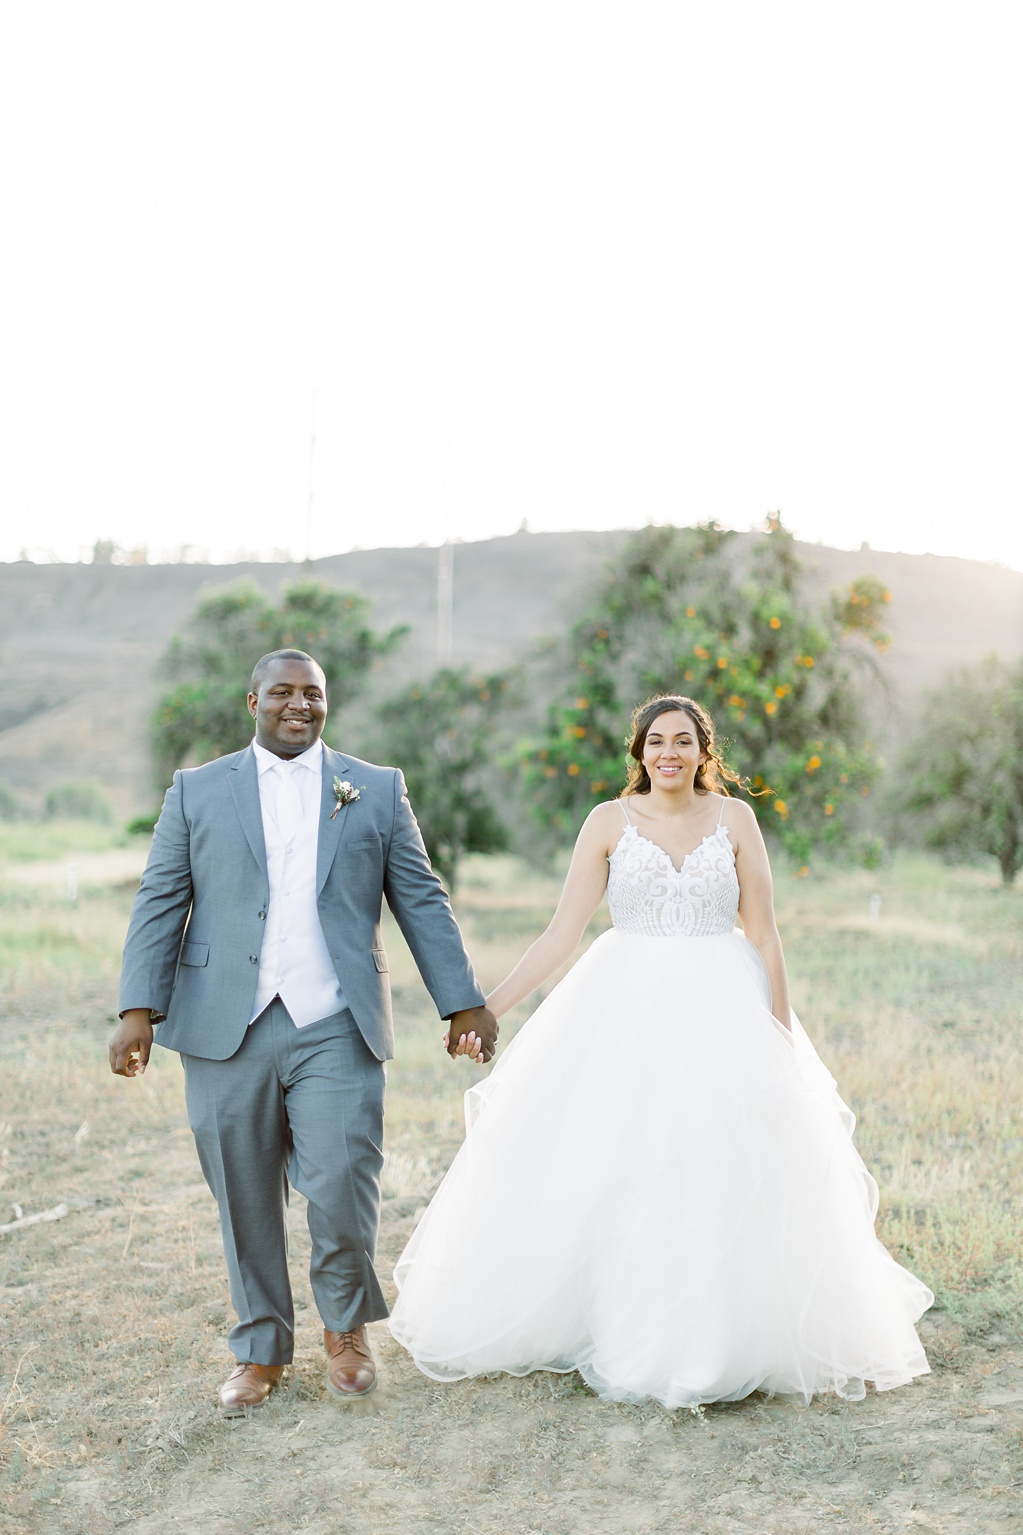 An Organic Floral Inspired Summer Wedding in the open fields of Hamilton Oaks, San Juan Capistrano by Wedding Photographer Madison Ellis (45)